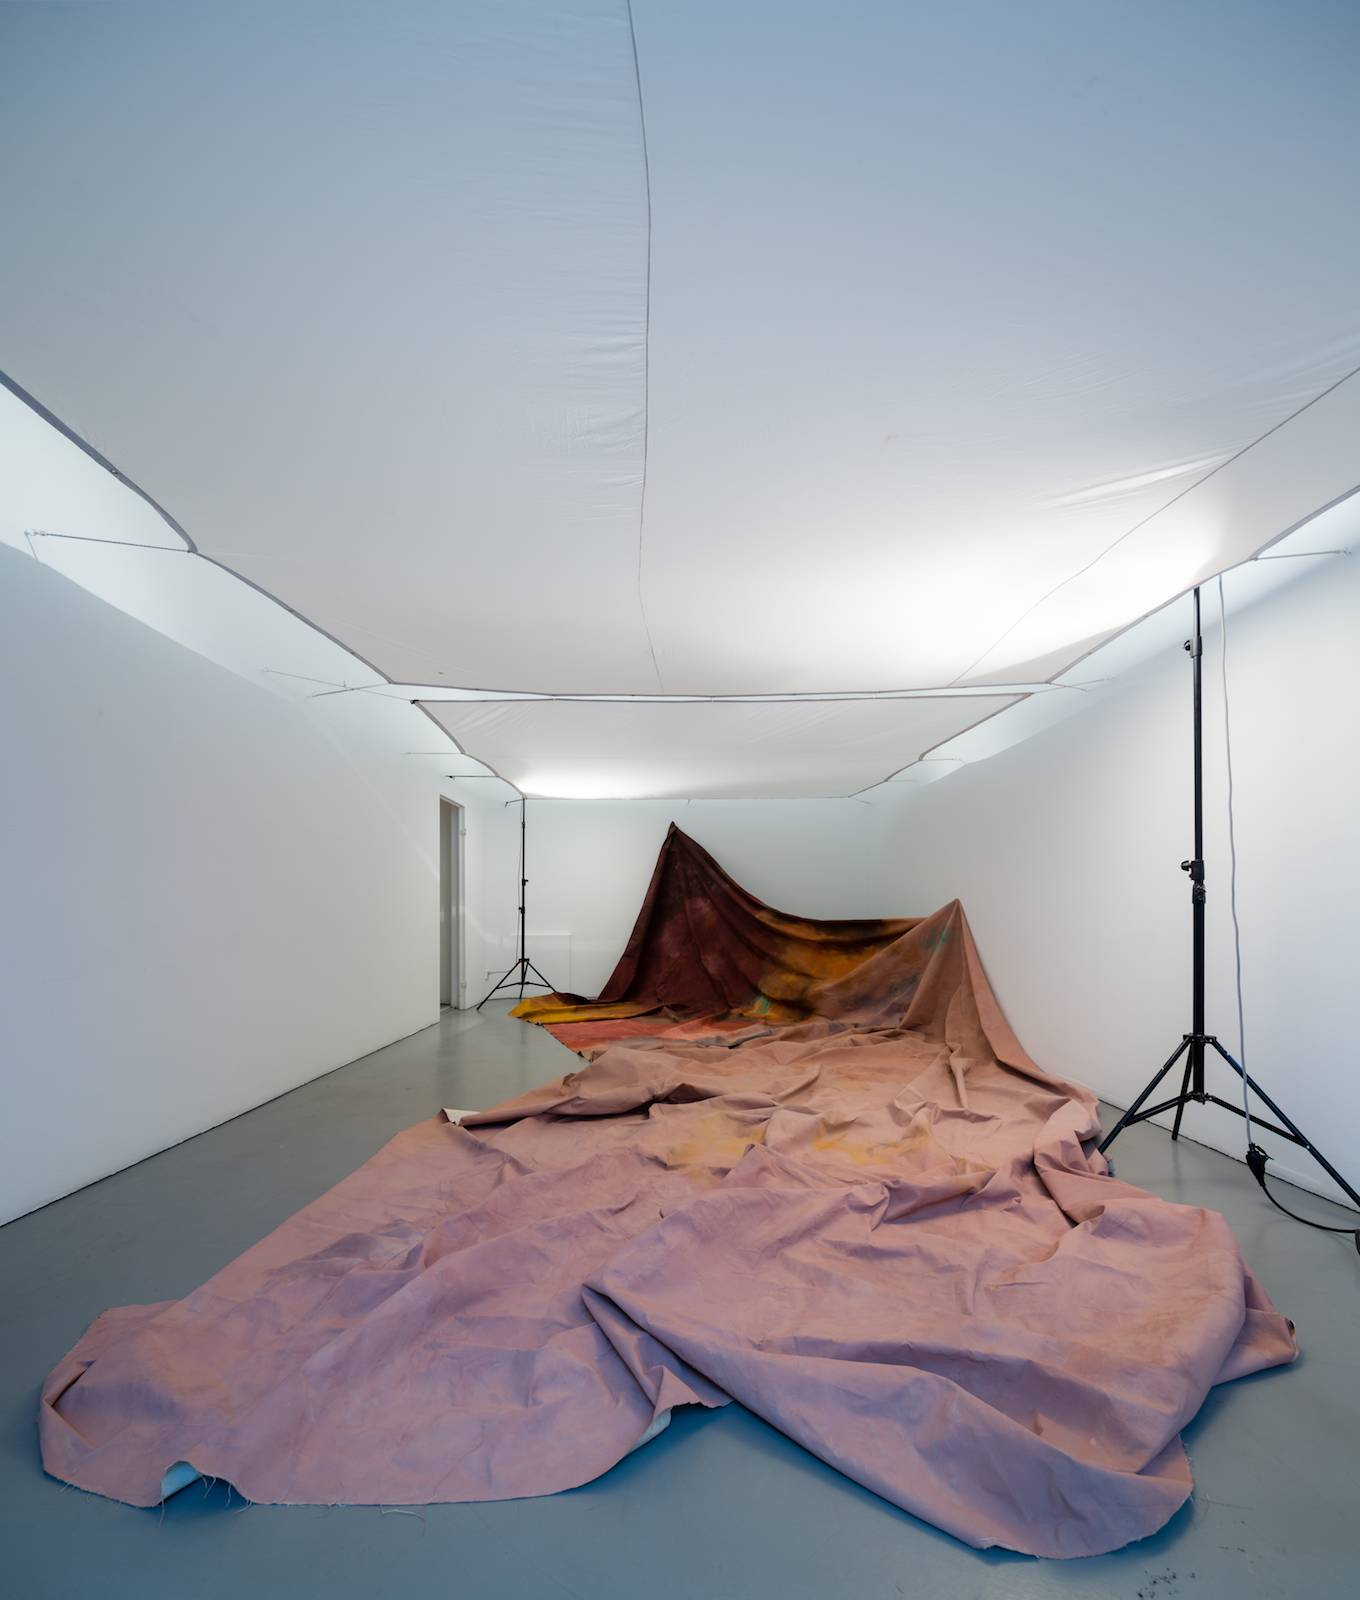 Sofia Ekström, Pose, 2015, acrylic on sailcloth, diffusion cloth and studio lamps, dimensions vary